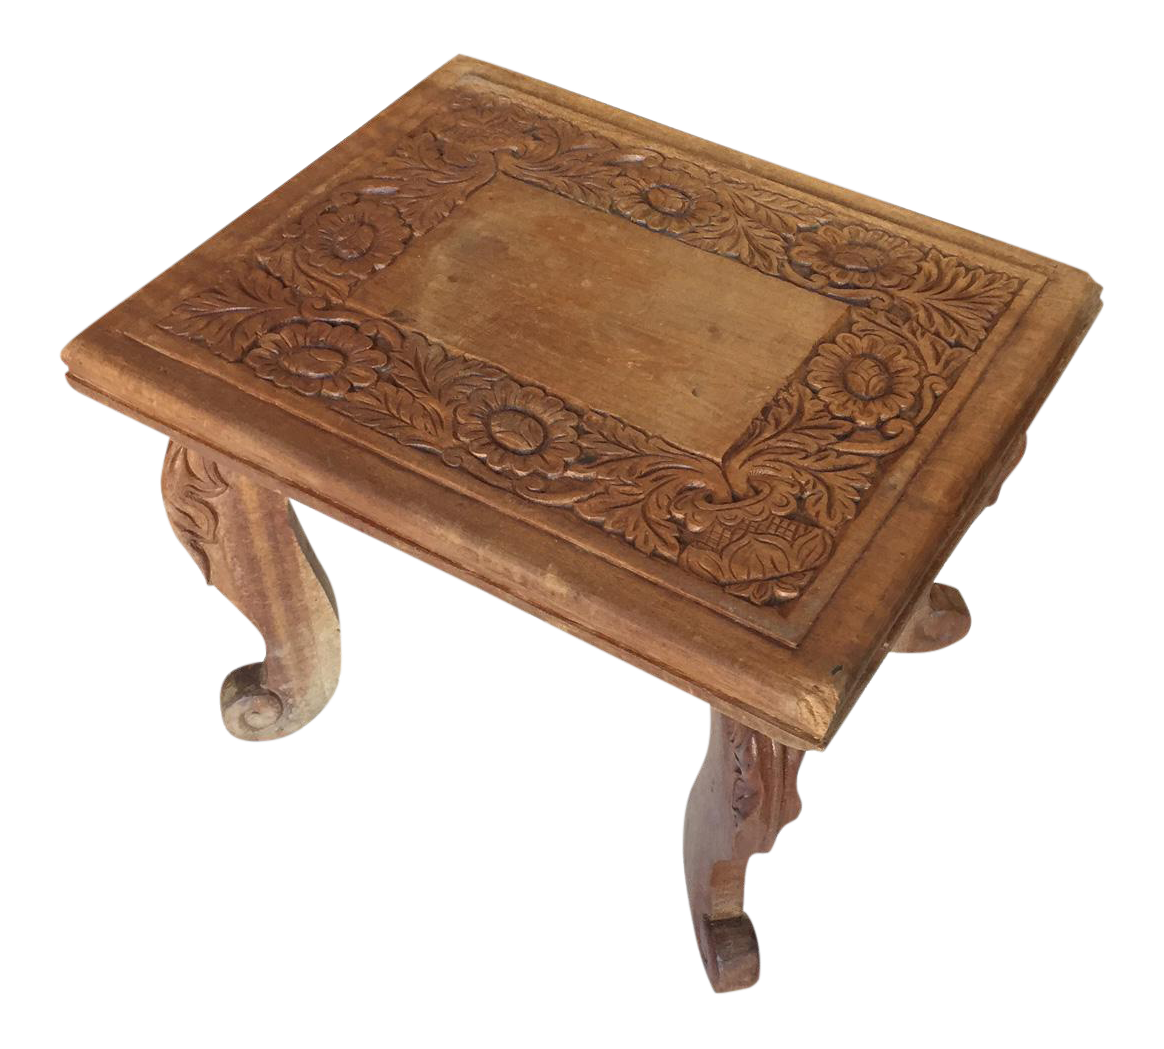 Charming Beautiful Carved Wooden Stool